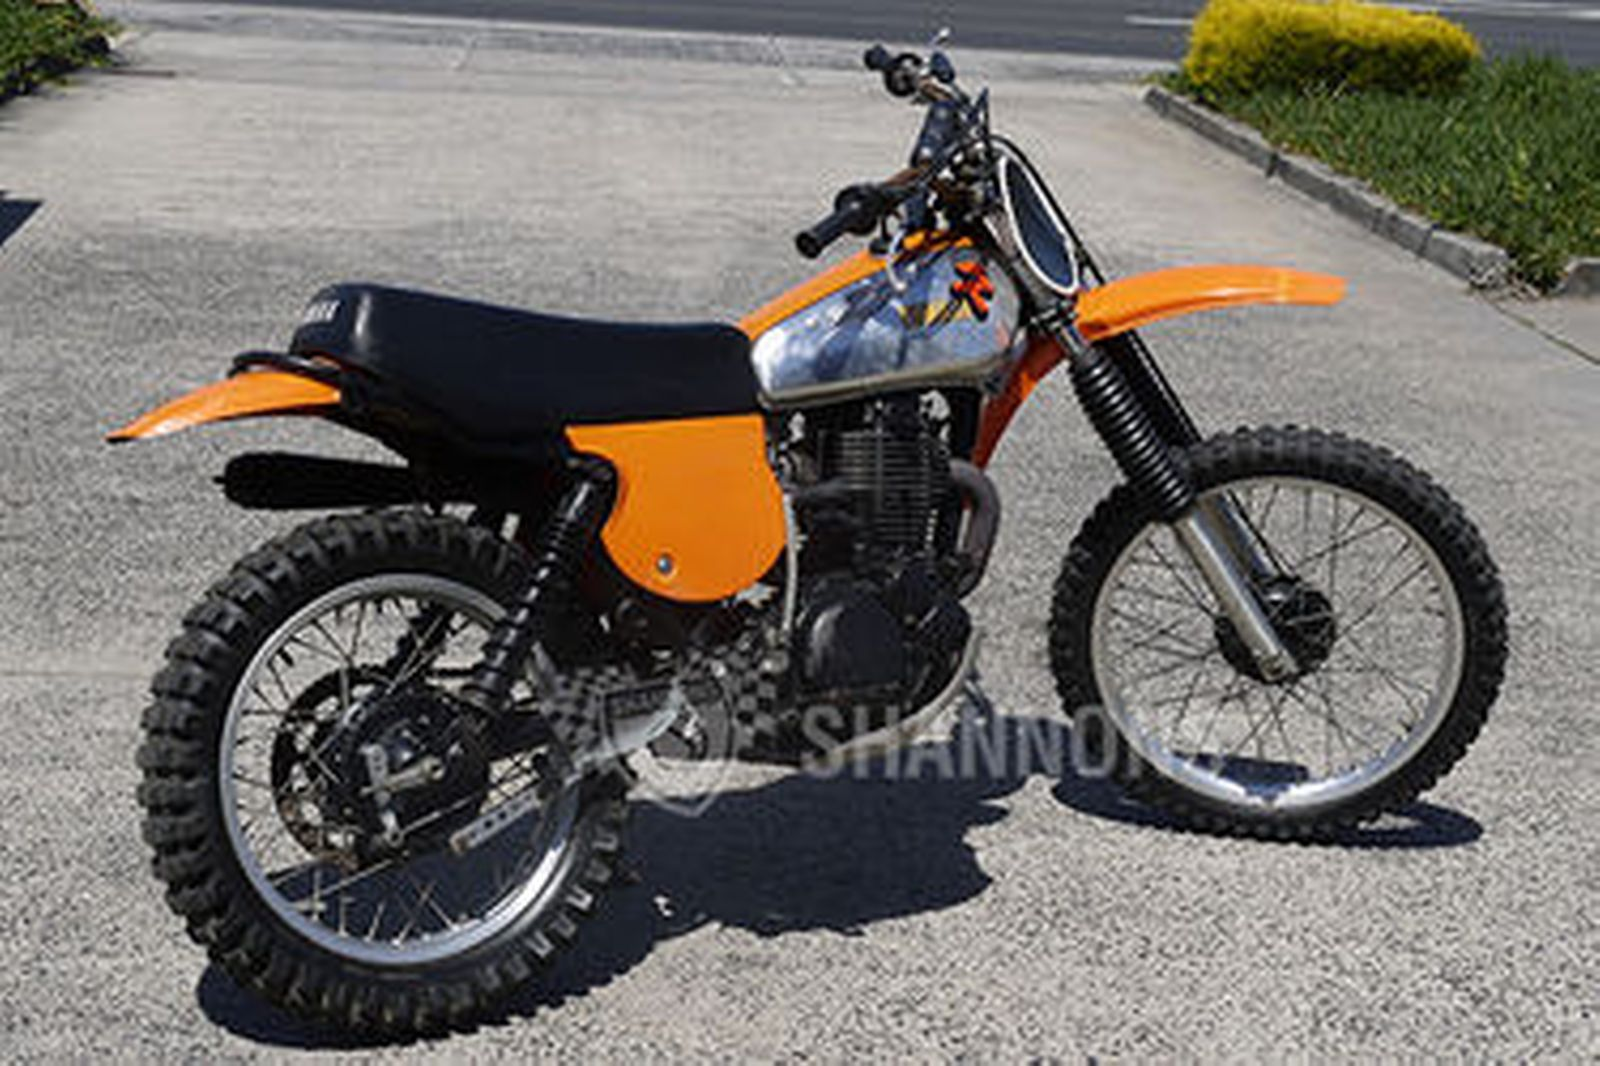 Yamaha TT500 Trail Bike